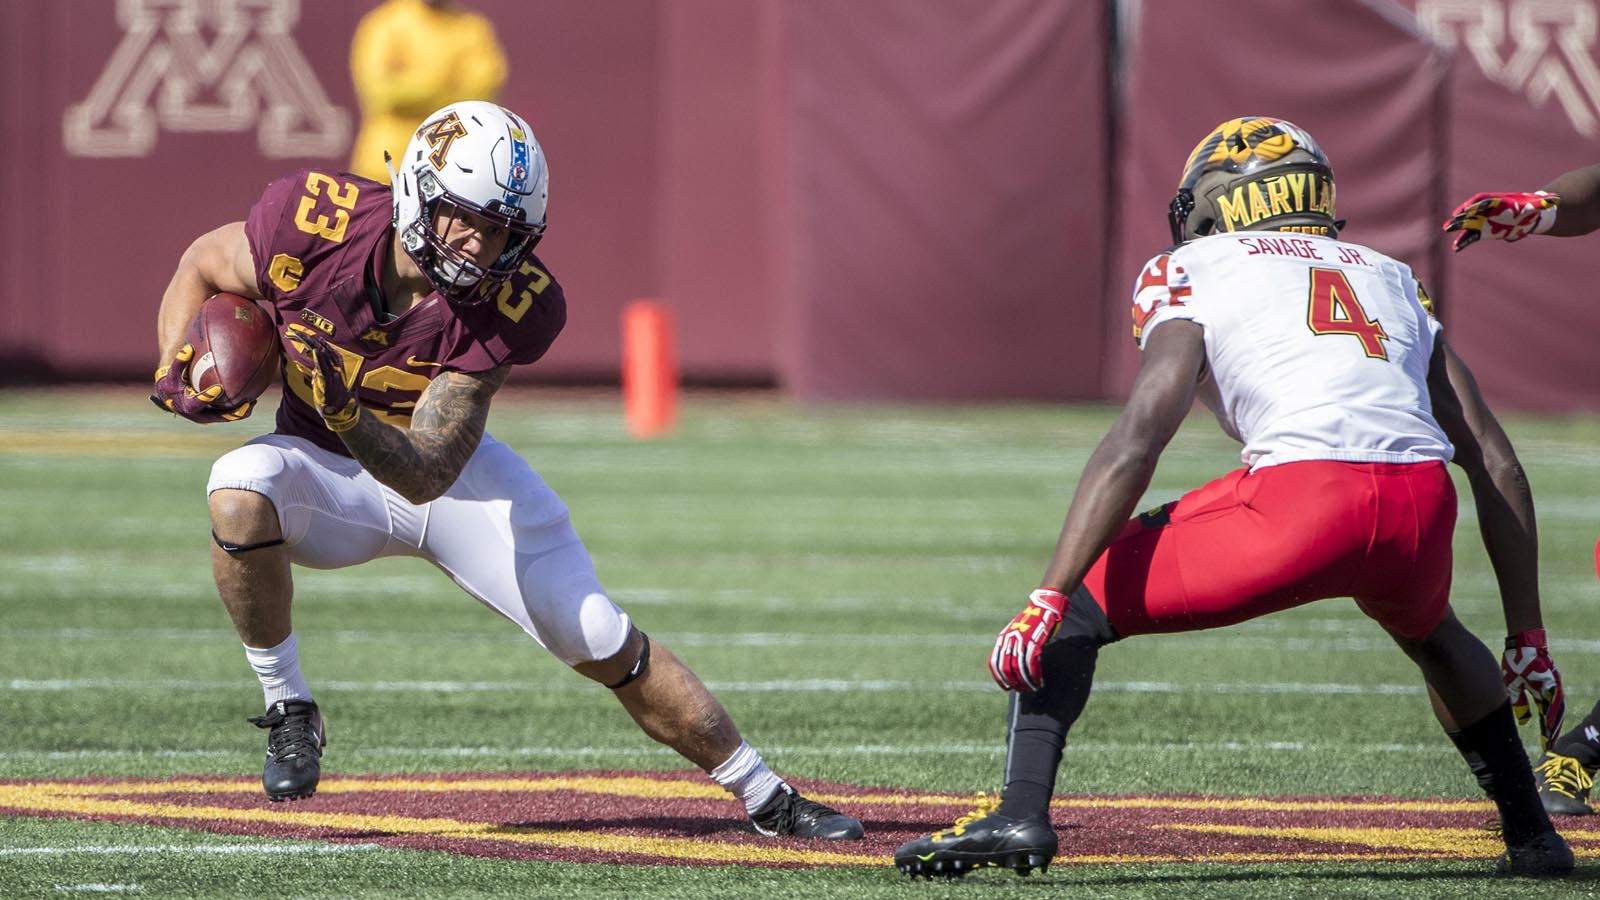 Sep 30, 2017; Minneapolis, MN, USA; Minnesota Golden Gophers running back Shannon Brooks (23) rushes with ball past Maryland Terrapins defensive back Darnell Savage Jr. (4) in the first half at TCF Bank Stadium. Mandatory Credit: Jesse Johnson-USA TODAY Sports